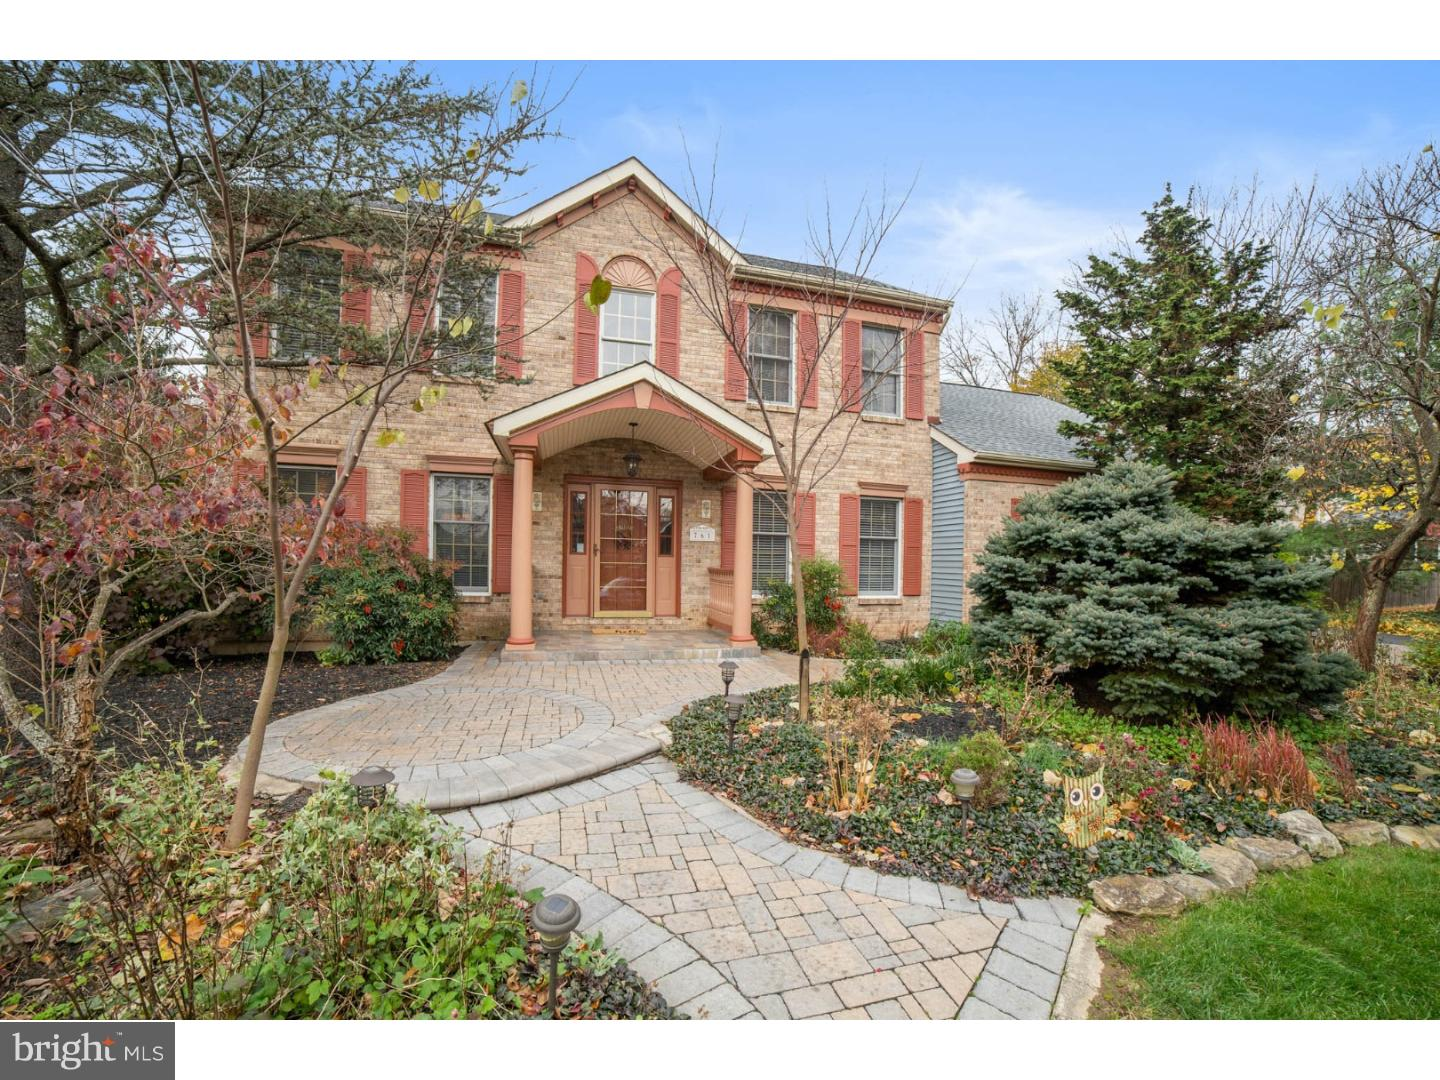 761 CASTLEWOOD DRIVE, DRESHER, PA 19025